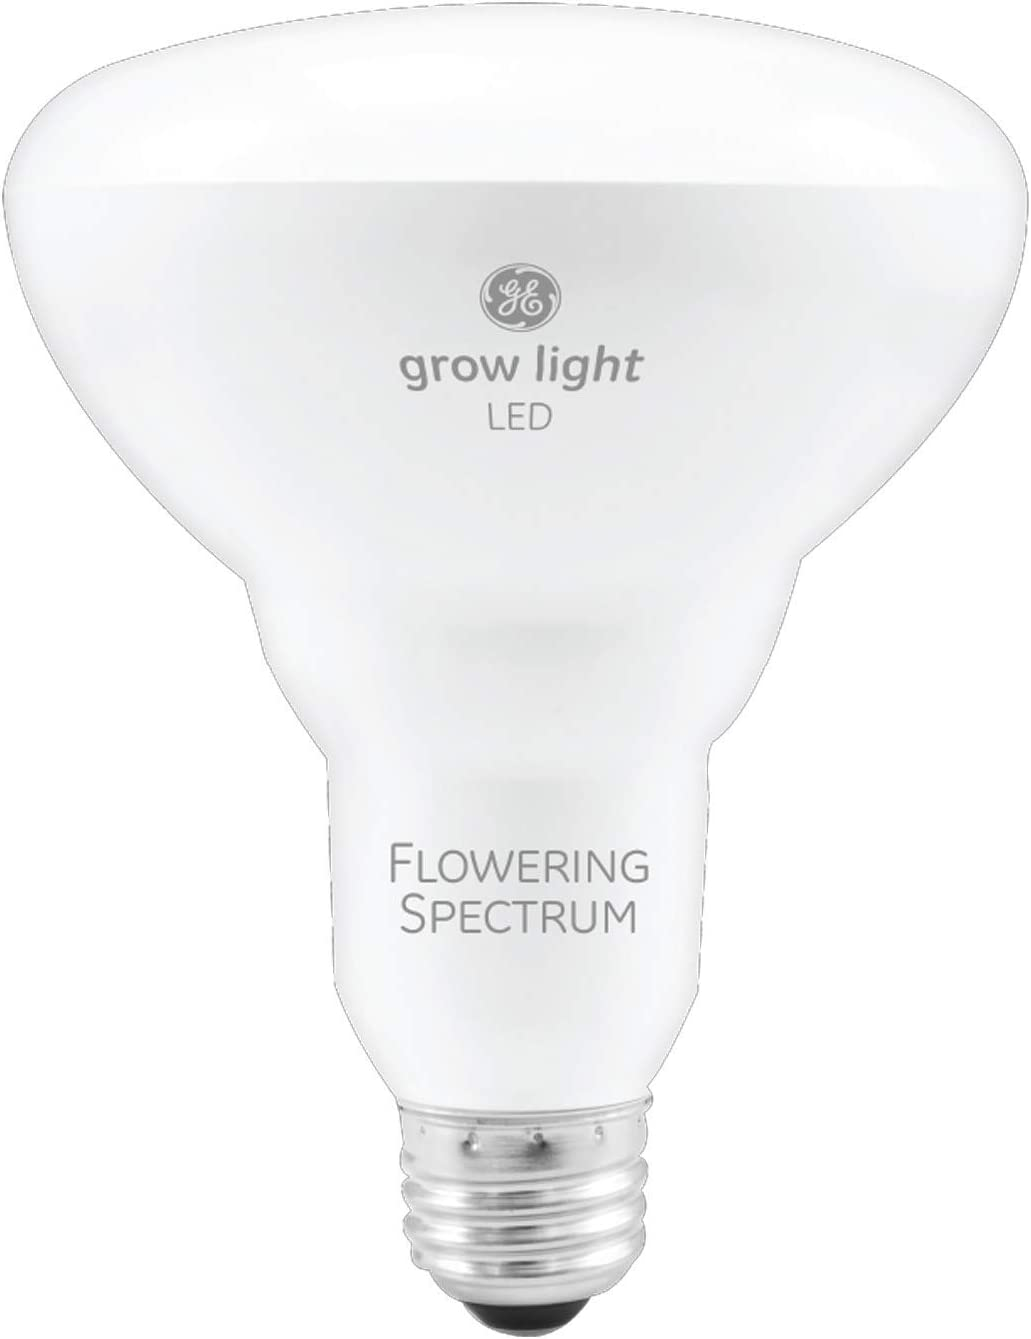 GE Lighting 93101231 9-Watt BR30 LED Grow Light Bulb for Indoor Plants, Red Reproductive Spectrum for Flowering and Fruiting (Renewed)